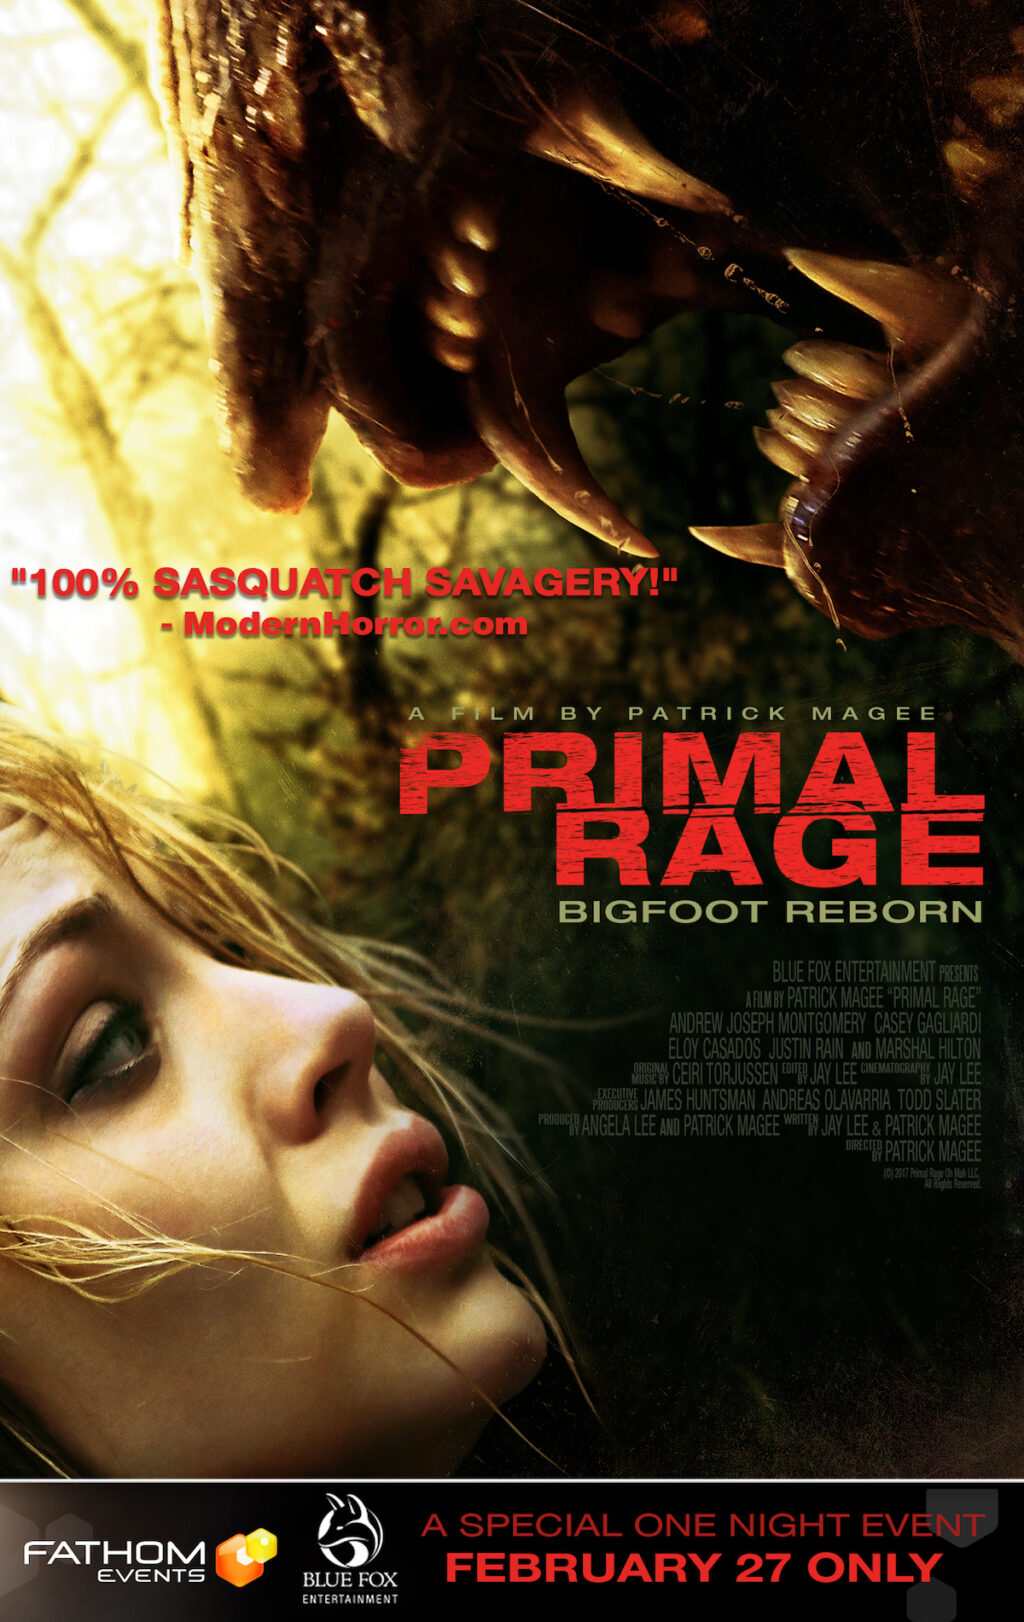 PrimalRage MiniPoster Artwork V3 1024x1622 - Contest: Find Bigfoot With a Primal Rage Double-Sided Mini-Poster!